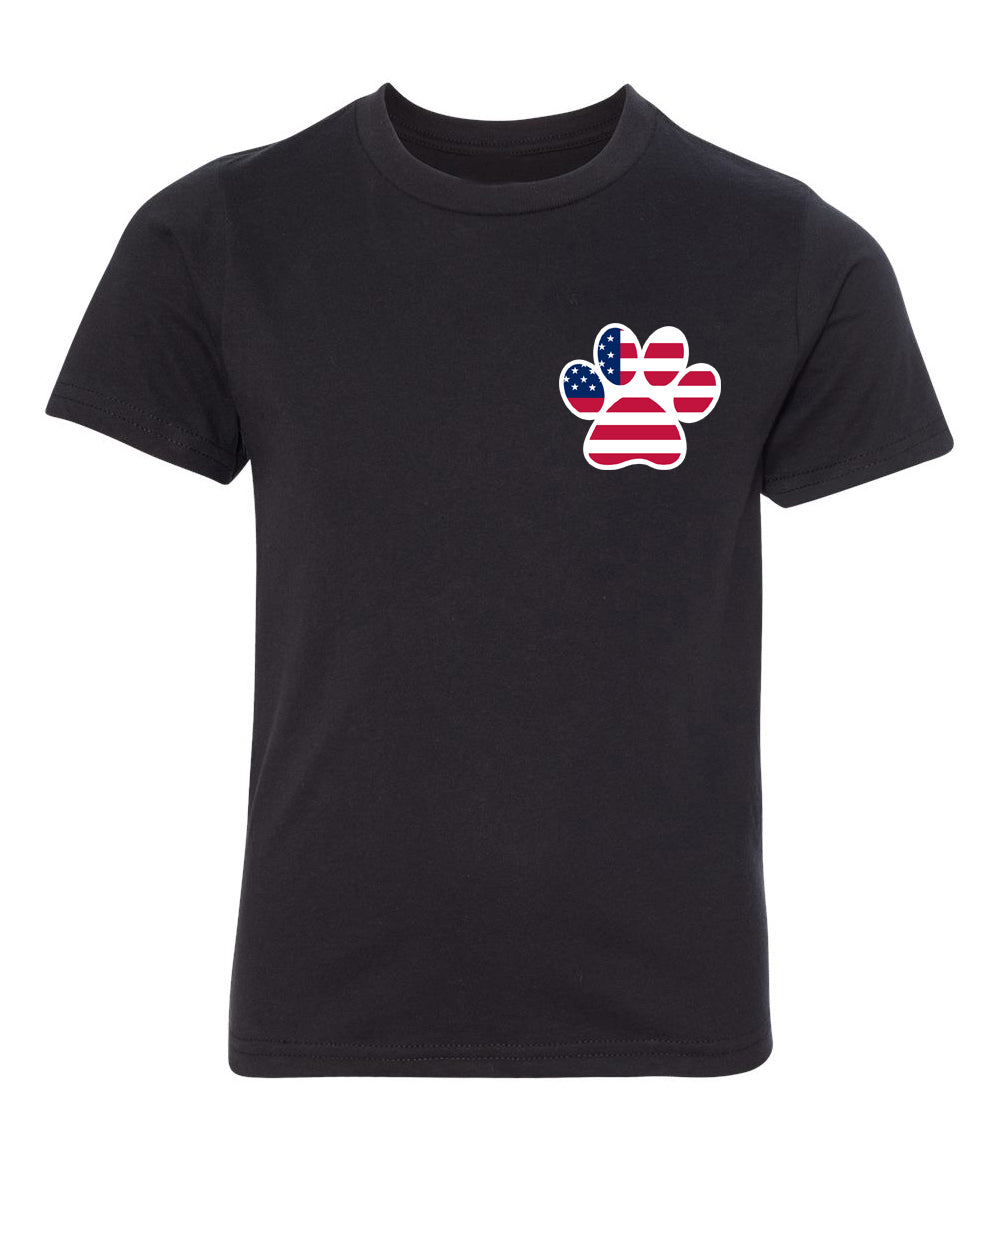 Shirt - American Flag Paw Print, Kids Gaphic T-shirts, 4th Of July Shirts